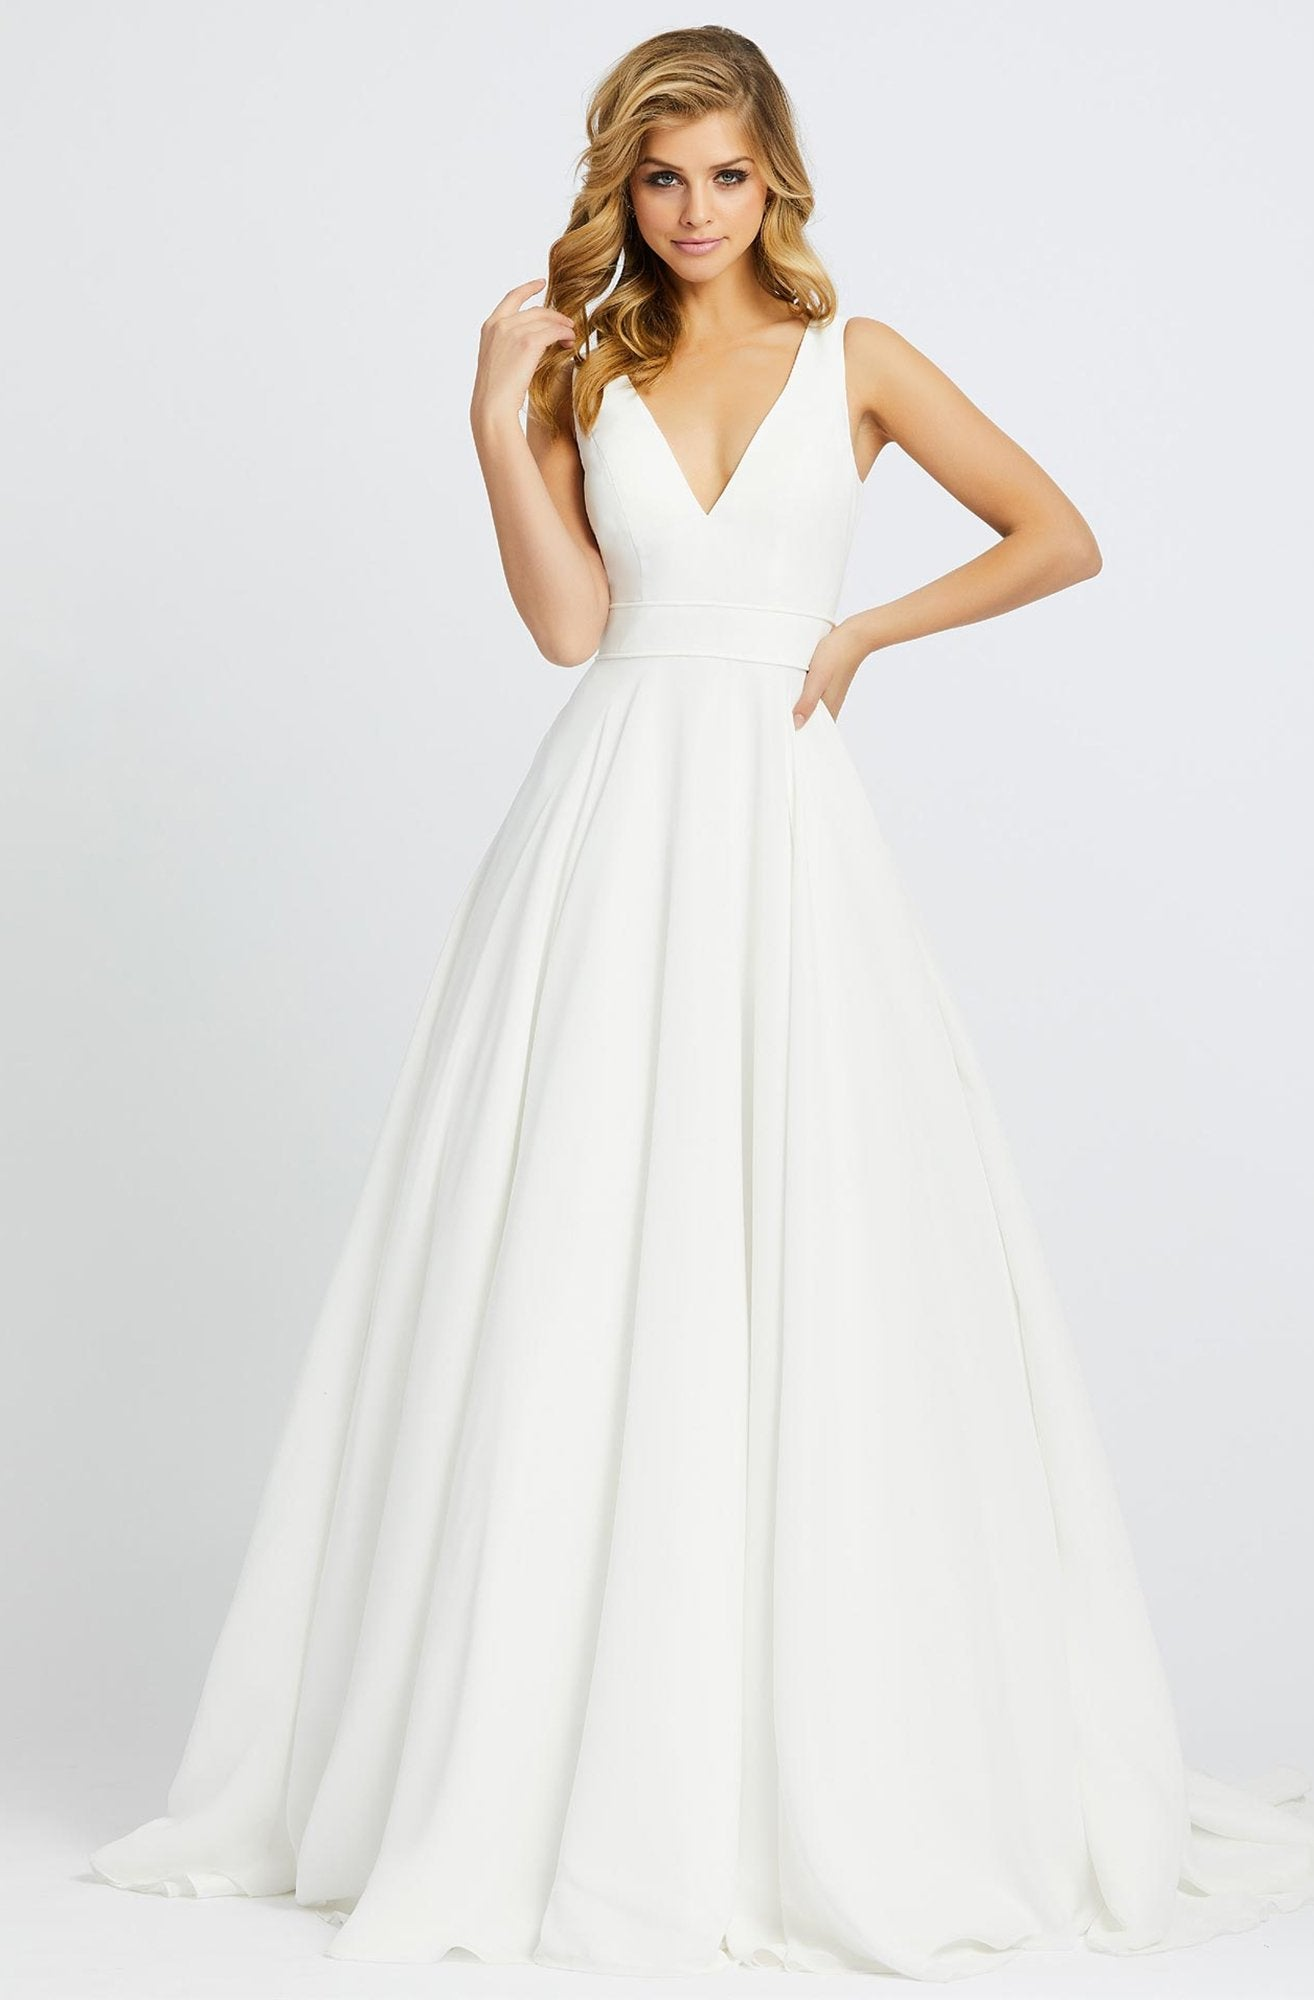 Ieena Duggal - 55272I V-Neckline Plain Long A-line Gown In White